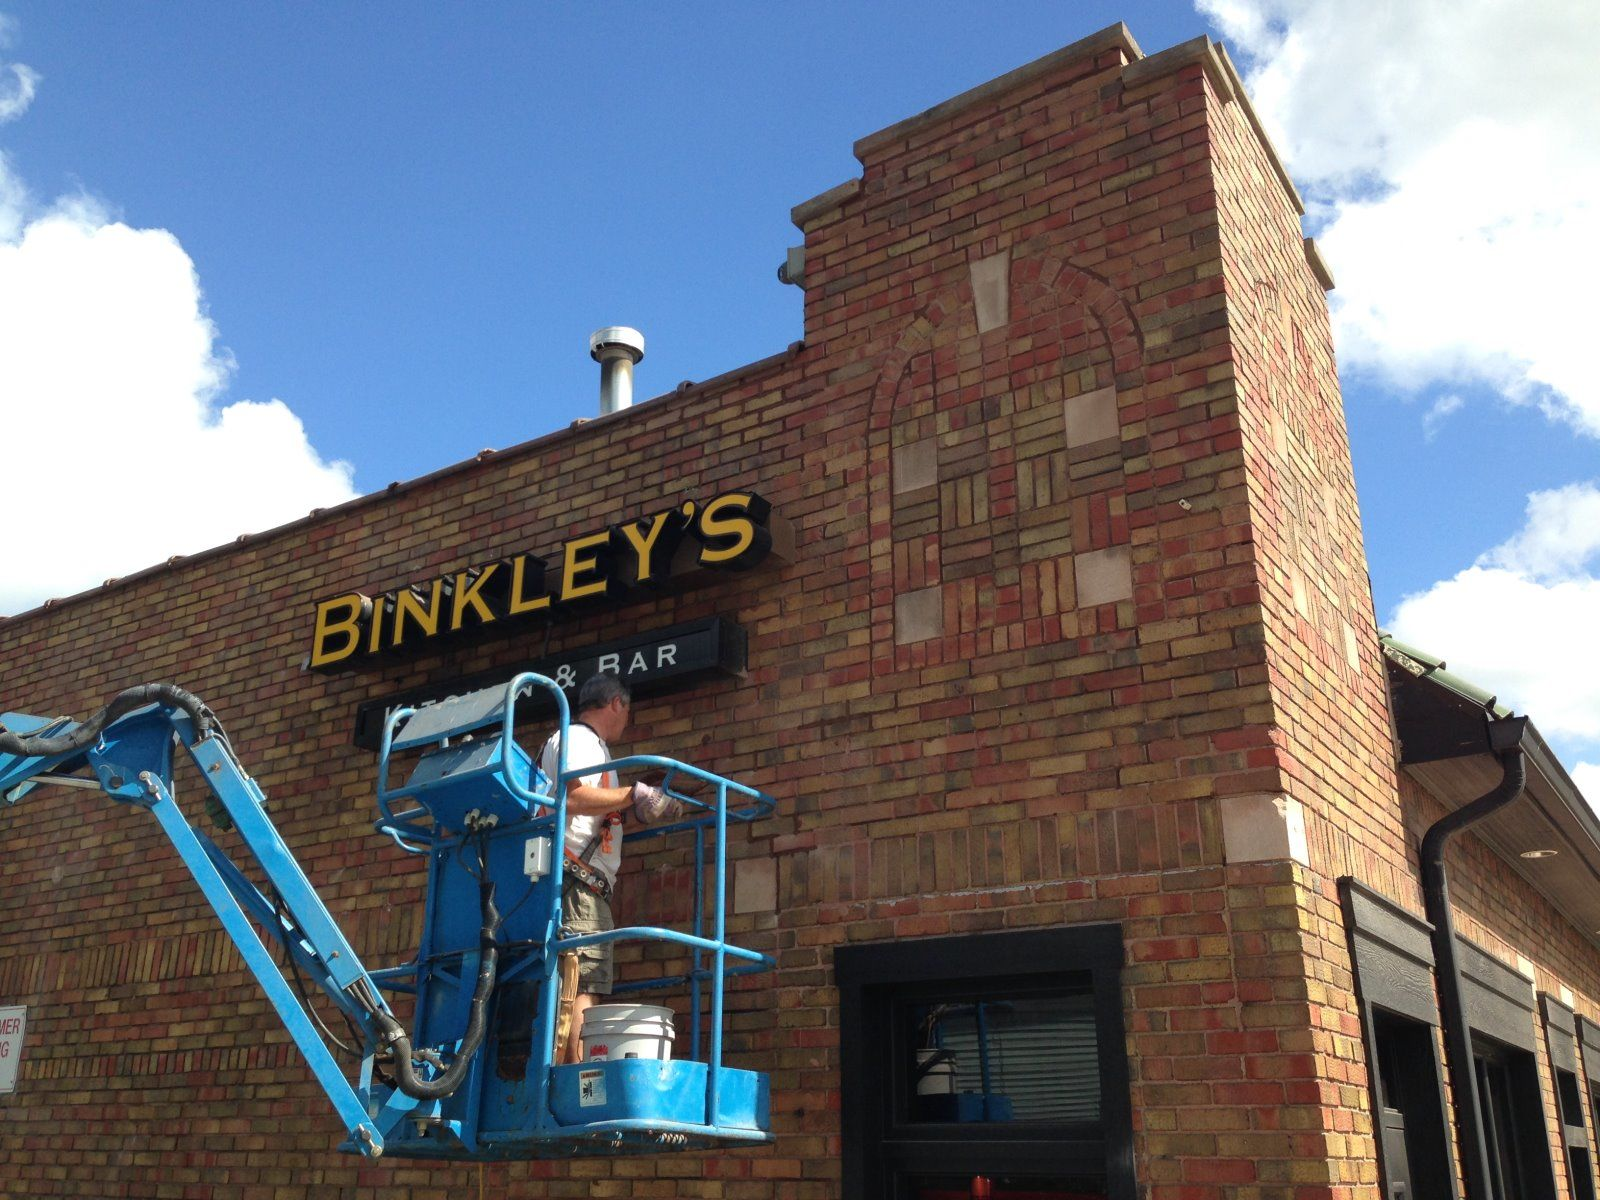 Binkley's Restaurant - Indianapolis, IN - Tuckpointing - masonry repair, mortar color match, brick replacement